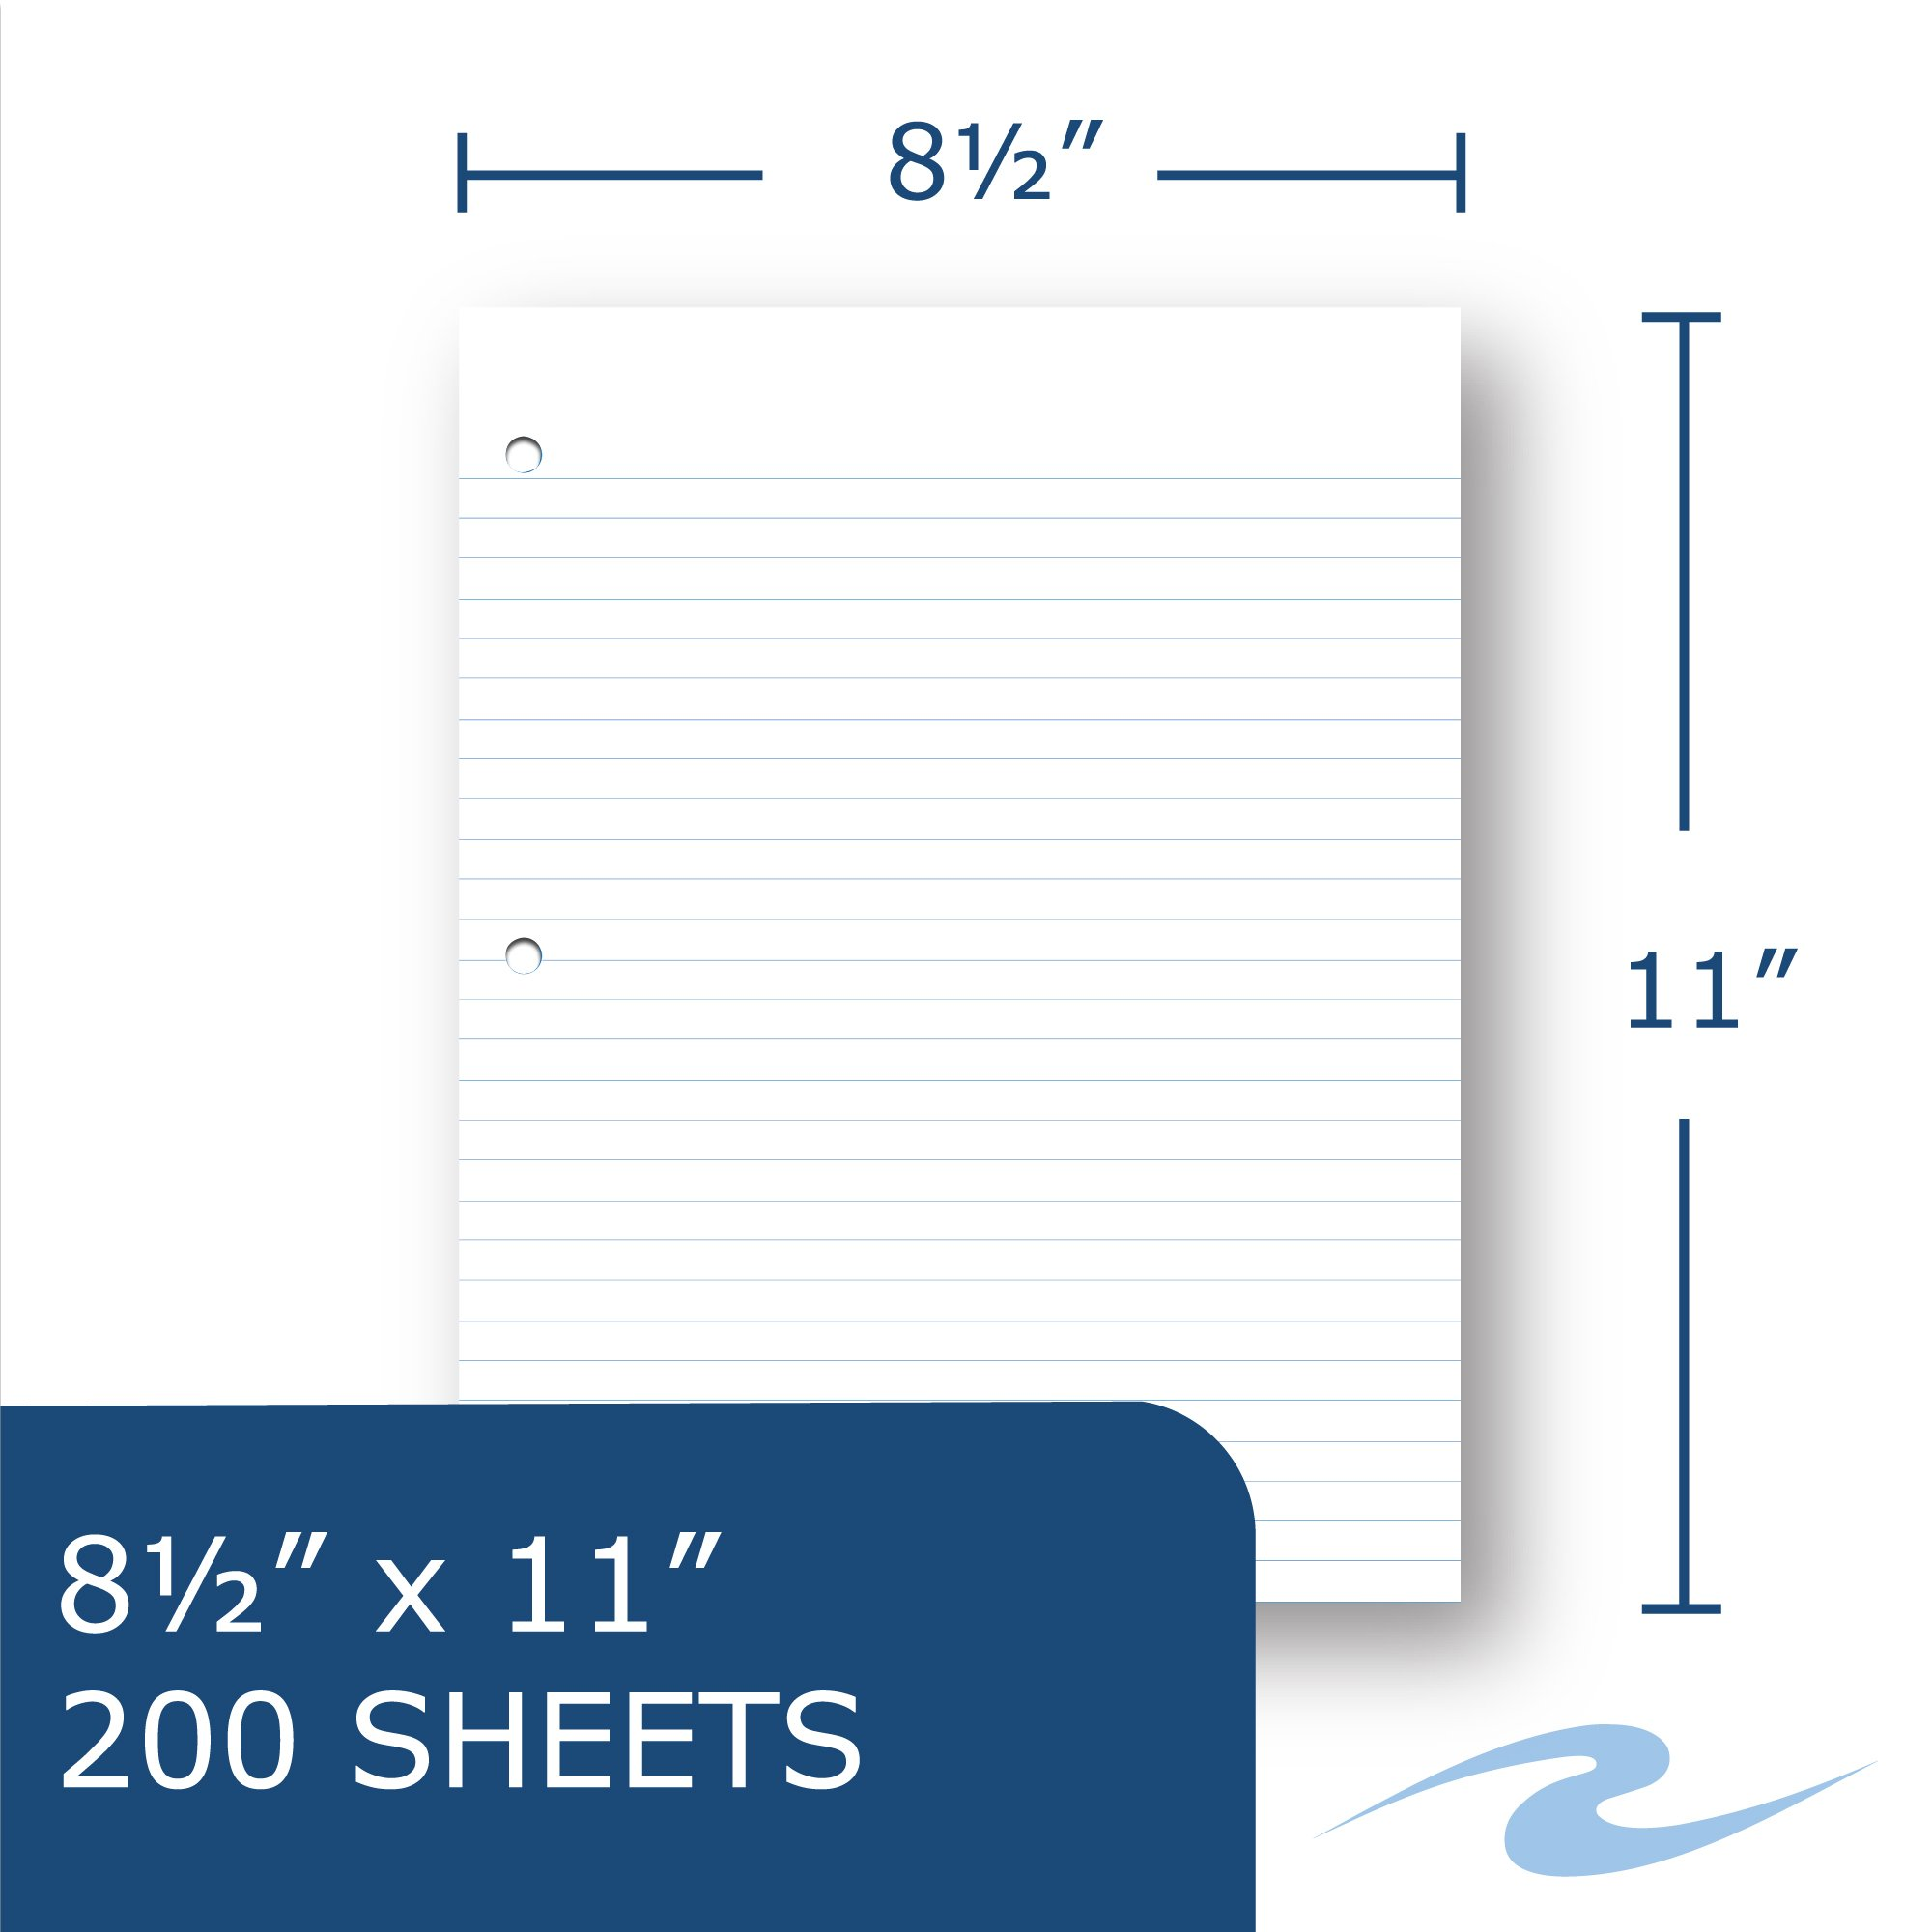 Case of 24 Packs of Looseleaf Filler Paper, 8.5''x11'', 200 Sheets of Smooth Medium Weight 15# White Paper, 3-Hole Punched, wide Ruled W/Margin by Roaring Spring (Image #3)